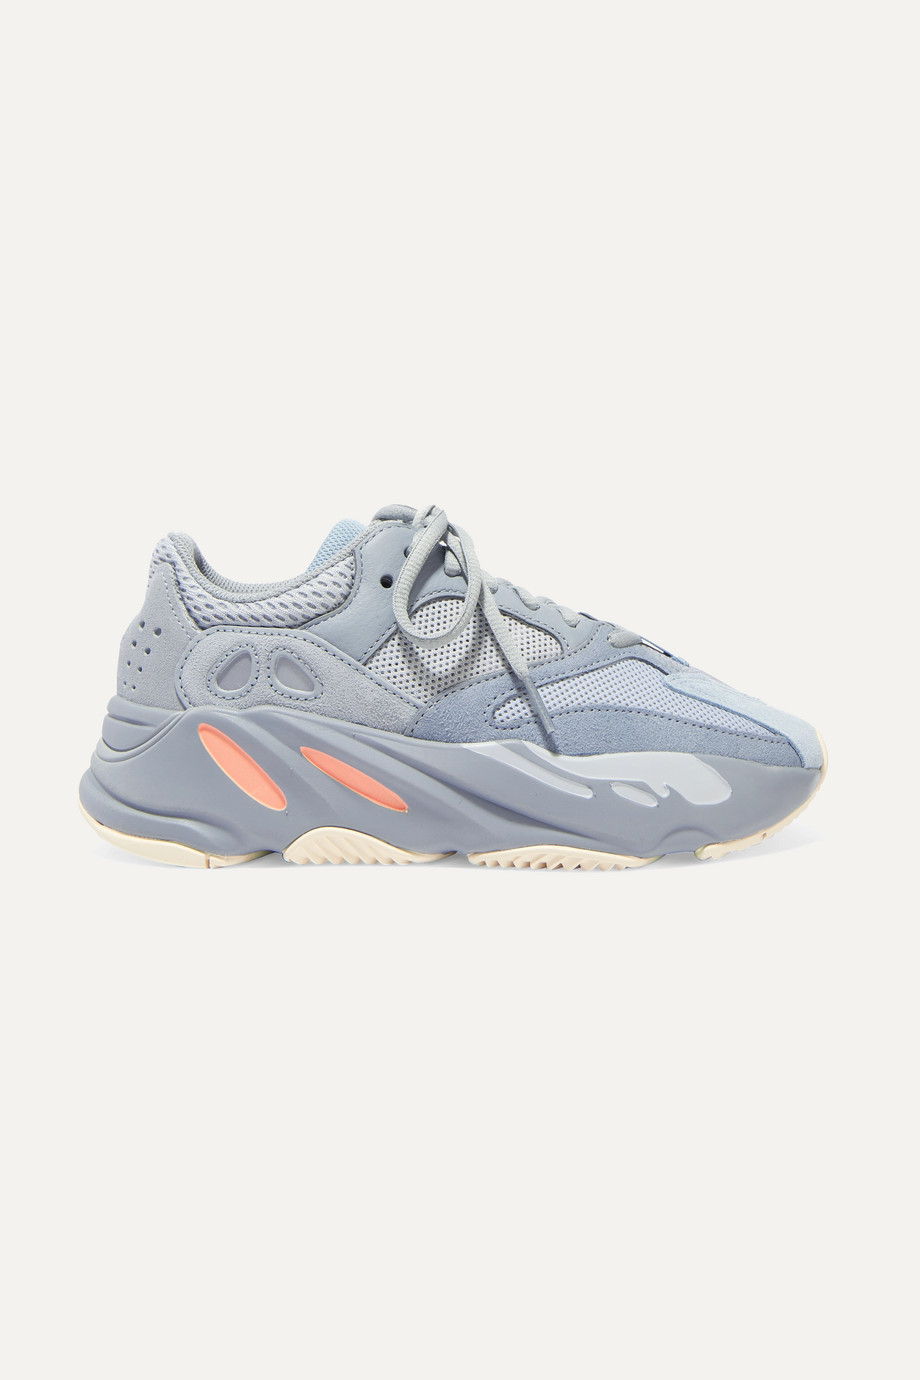 Exact Product: Yeezy Boost 700 V2 Static Wave Runner Sneakers, Brand: Adidas, Available on: net-a-porter.com, Price: $300